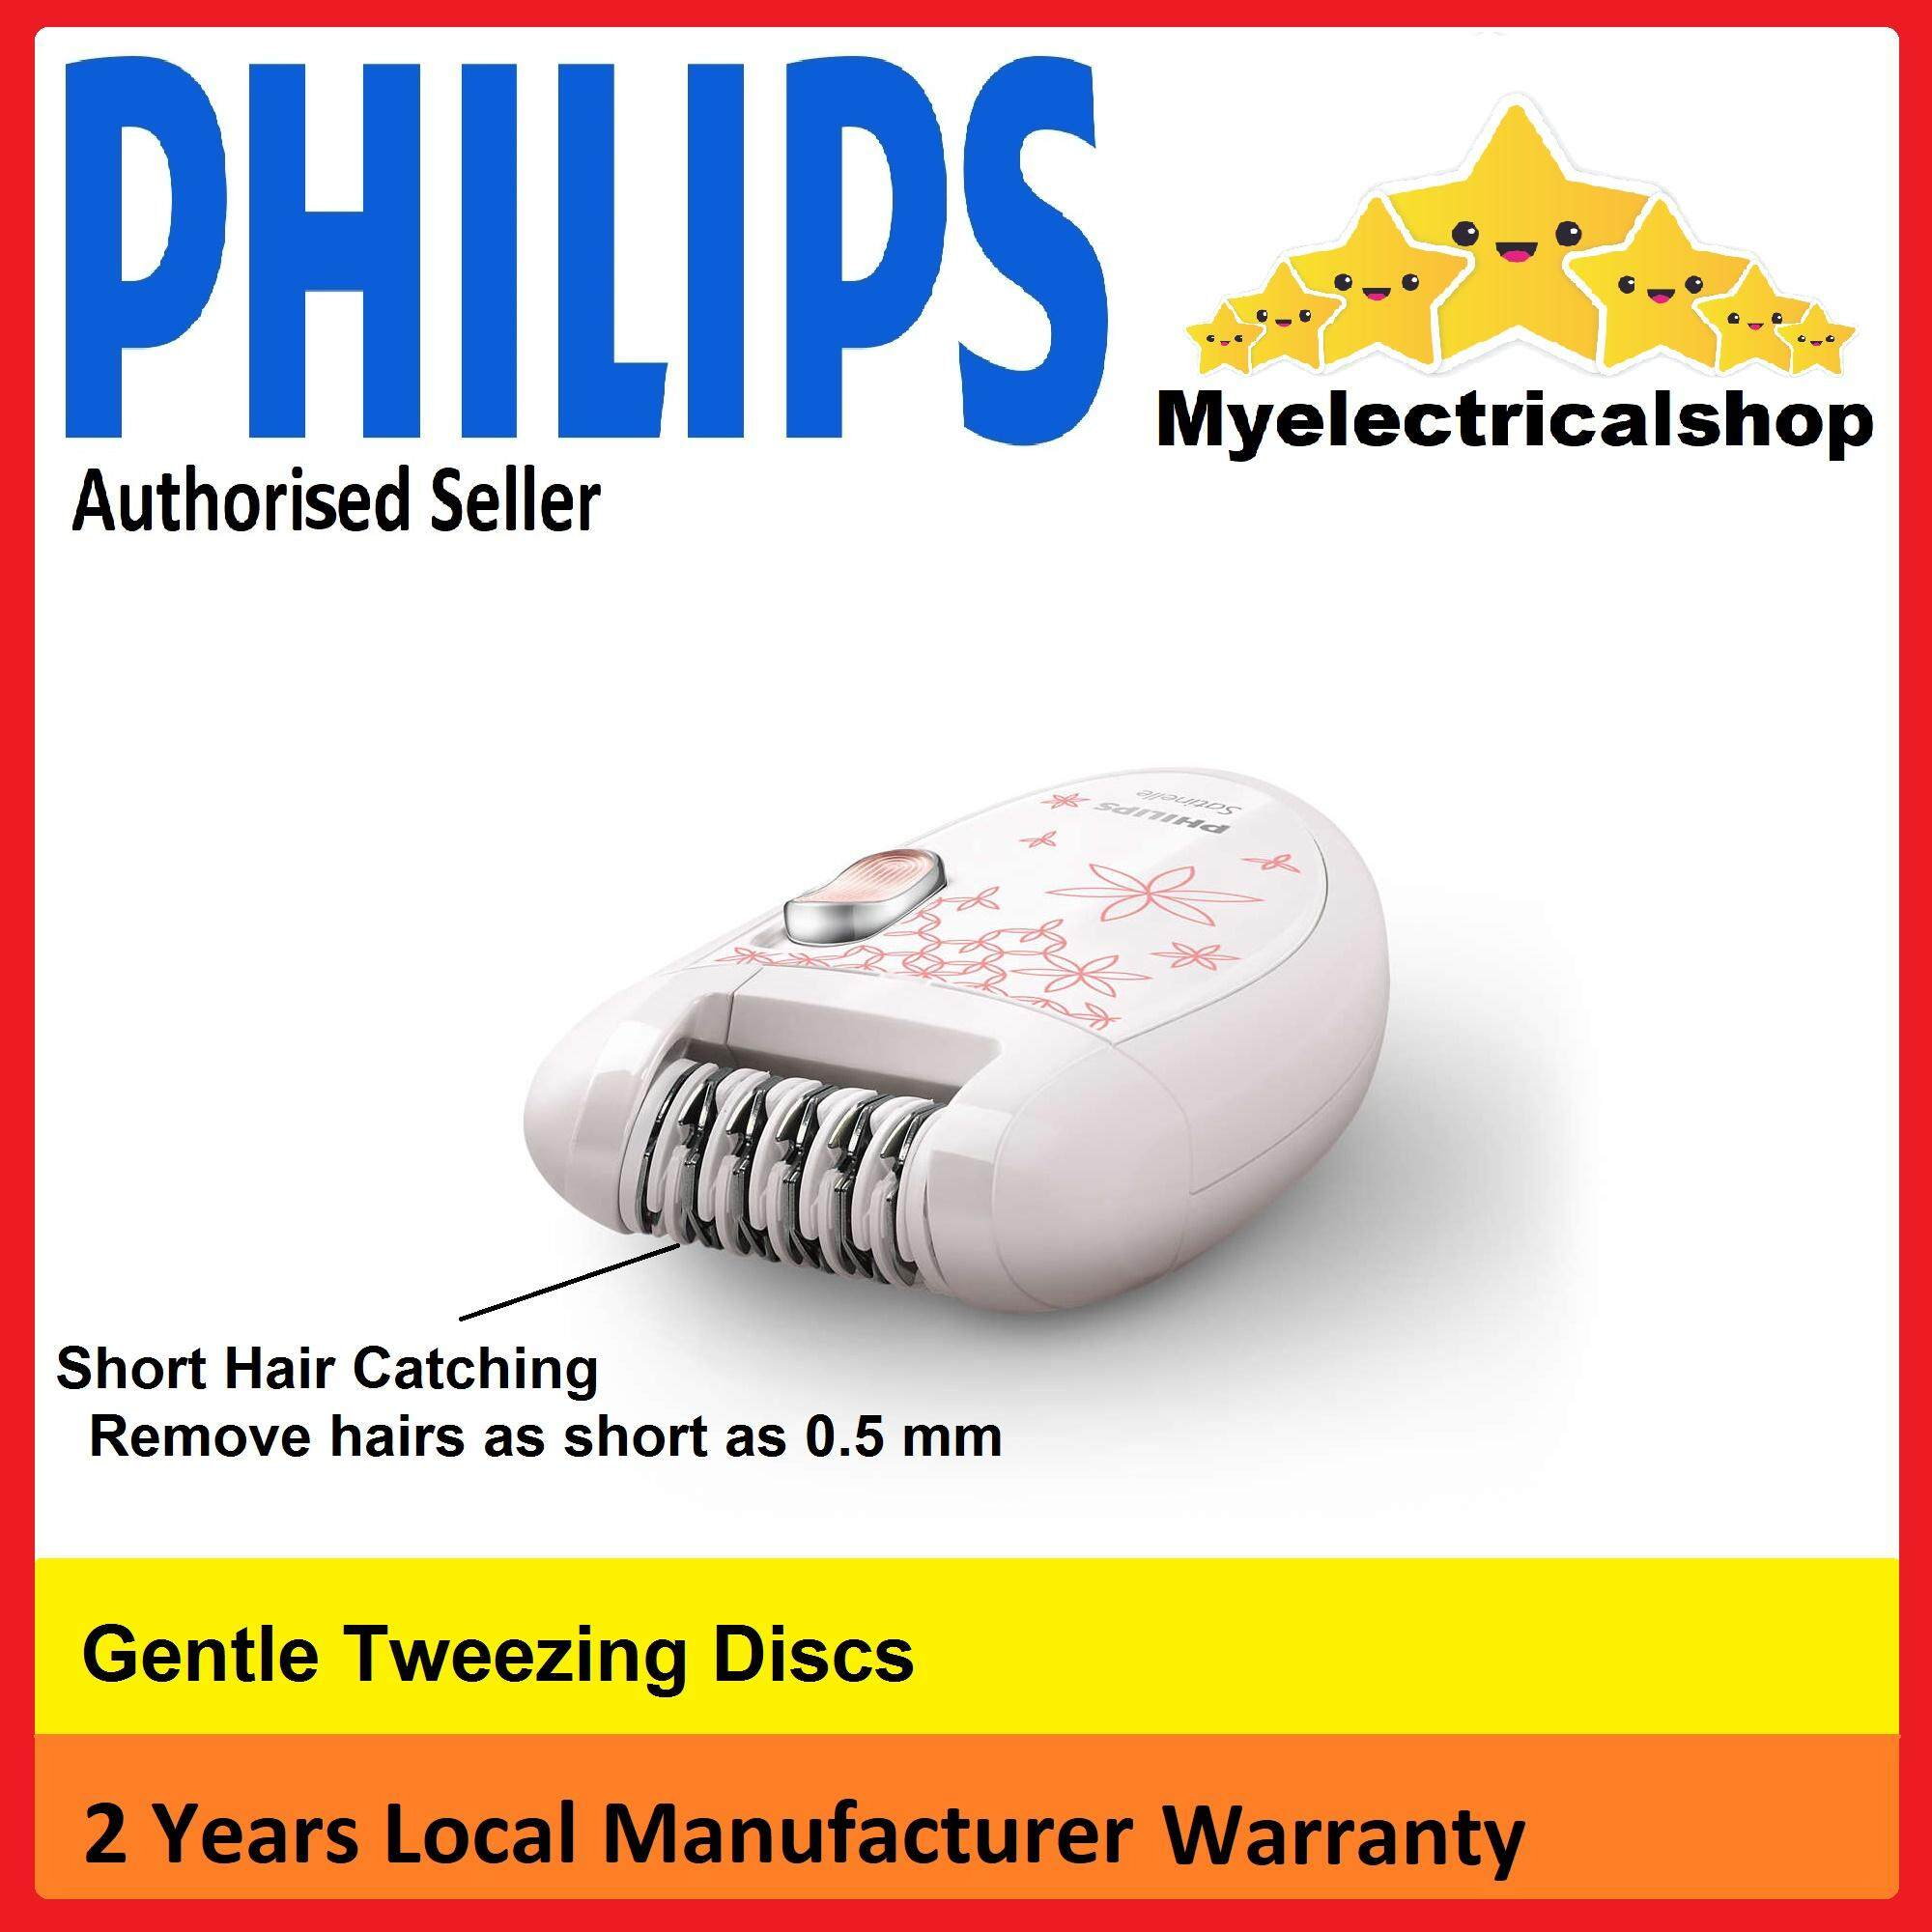 Philips Beauty Tools Hair Removal Appliances Price In Malaysia Epilator Hp 6420 Satinelle Compact Hp6420 00 Myelectricalshop